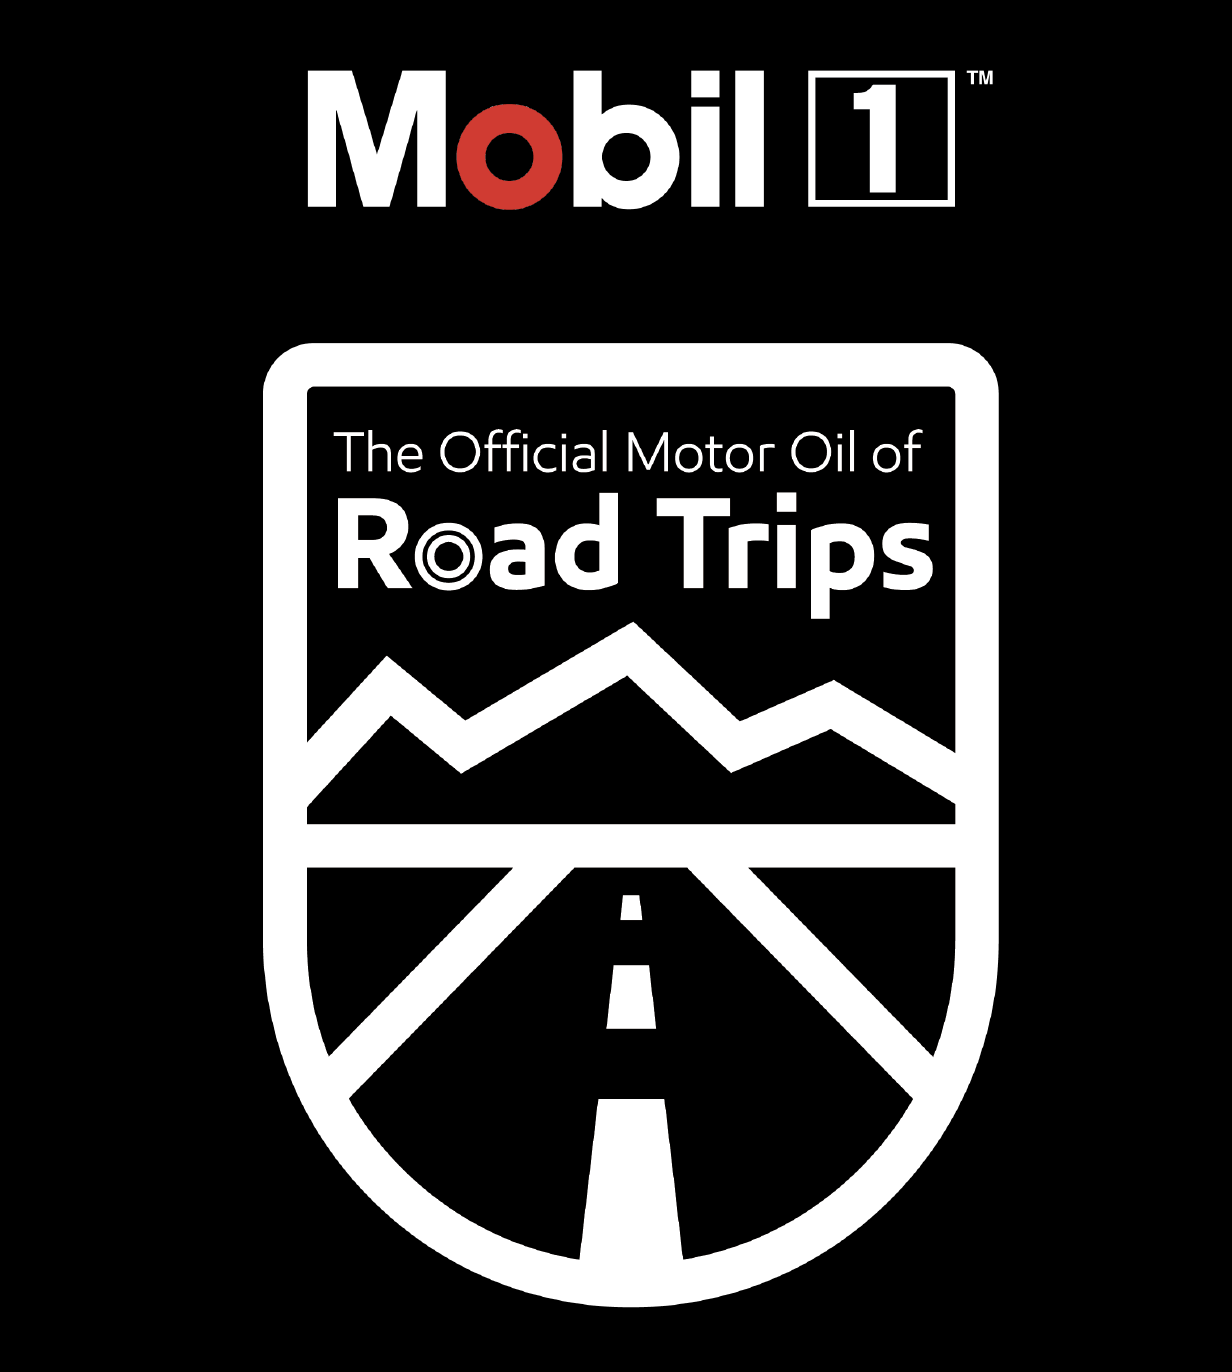 Mobil 1 Official Motor Oil of Road Trips Badge